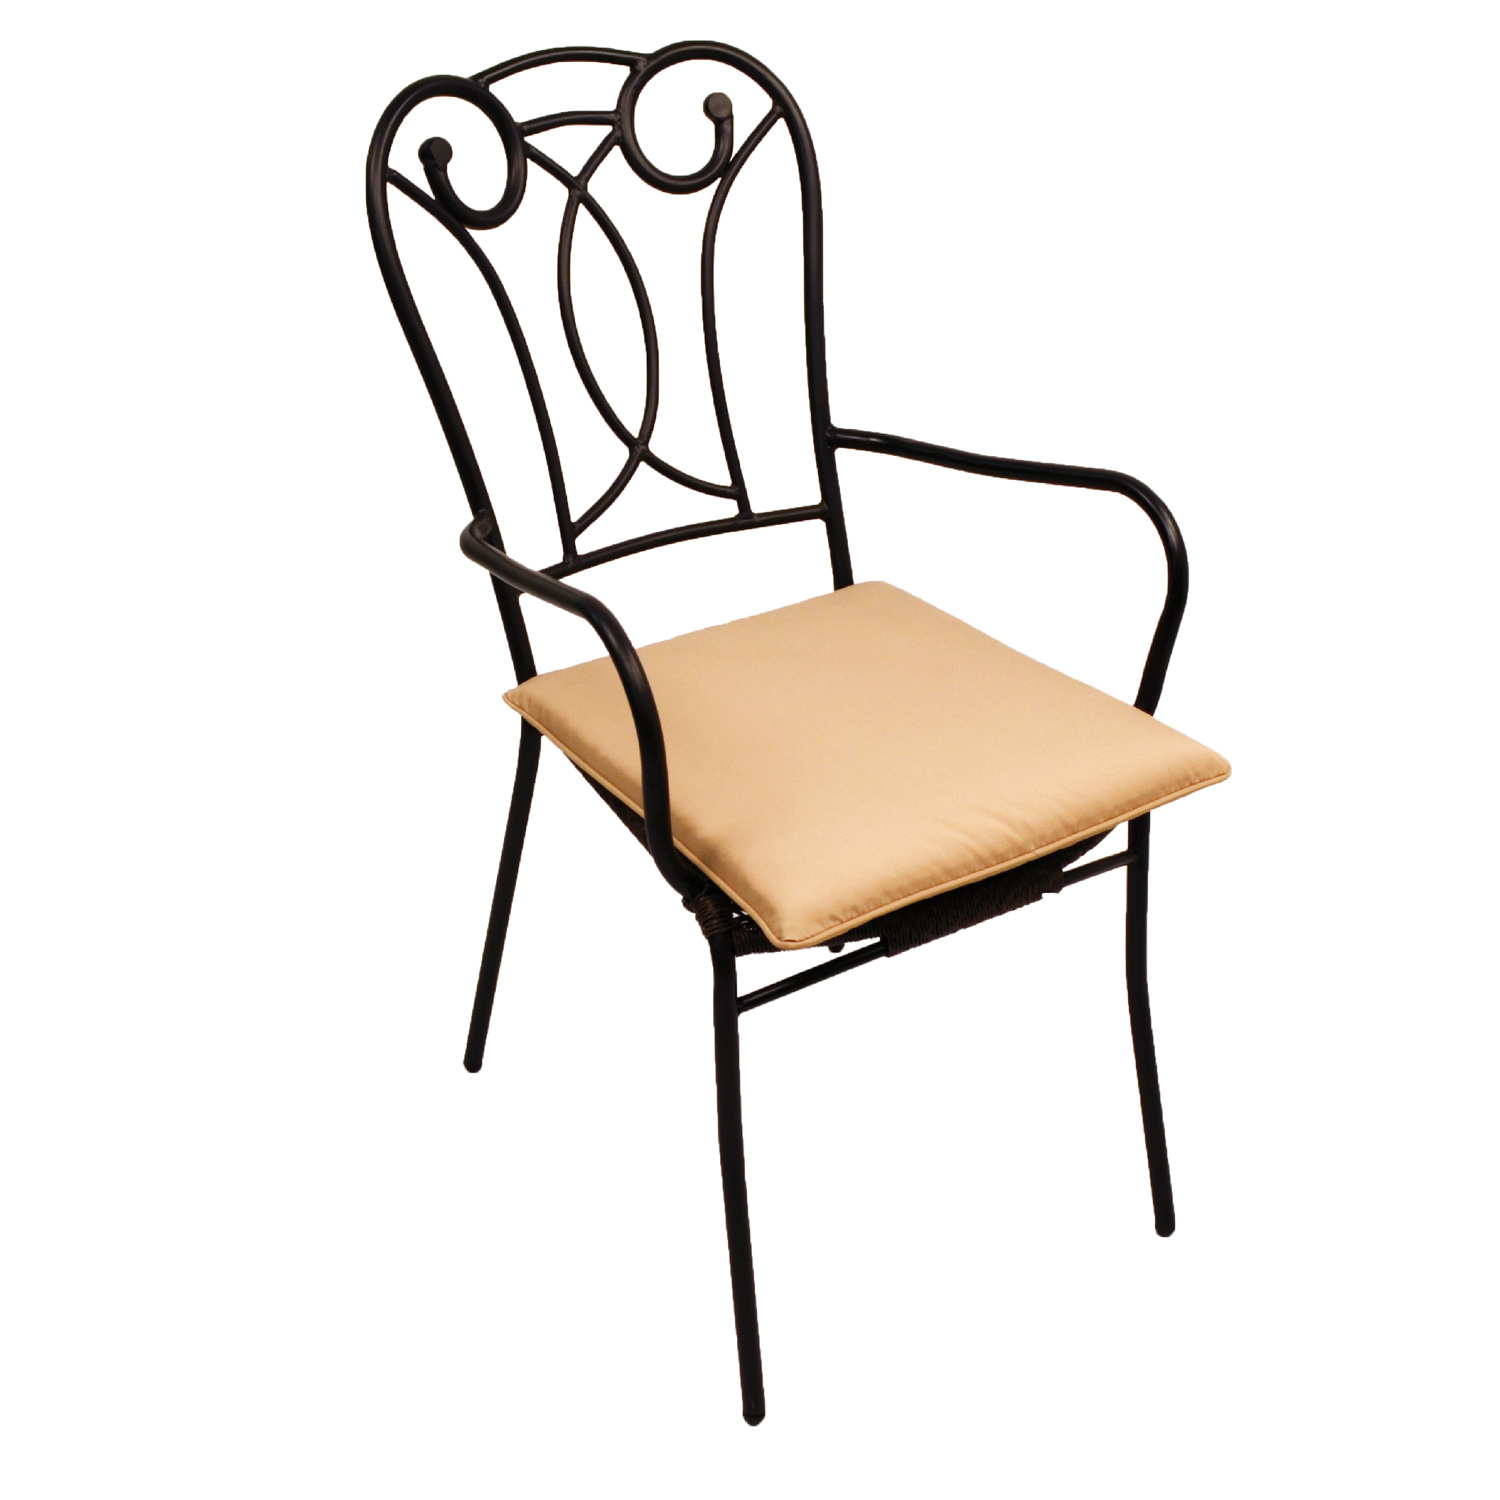 https://www.firstfurniture.co.uk/pub/media/catalog/product/f/p/fp-184-verona-chair-with-cushion_1.jpg